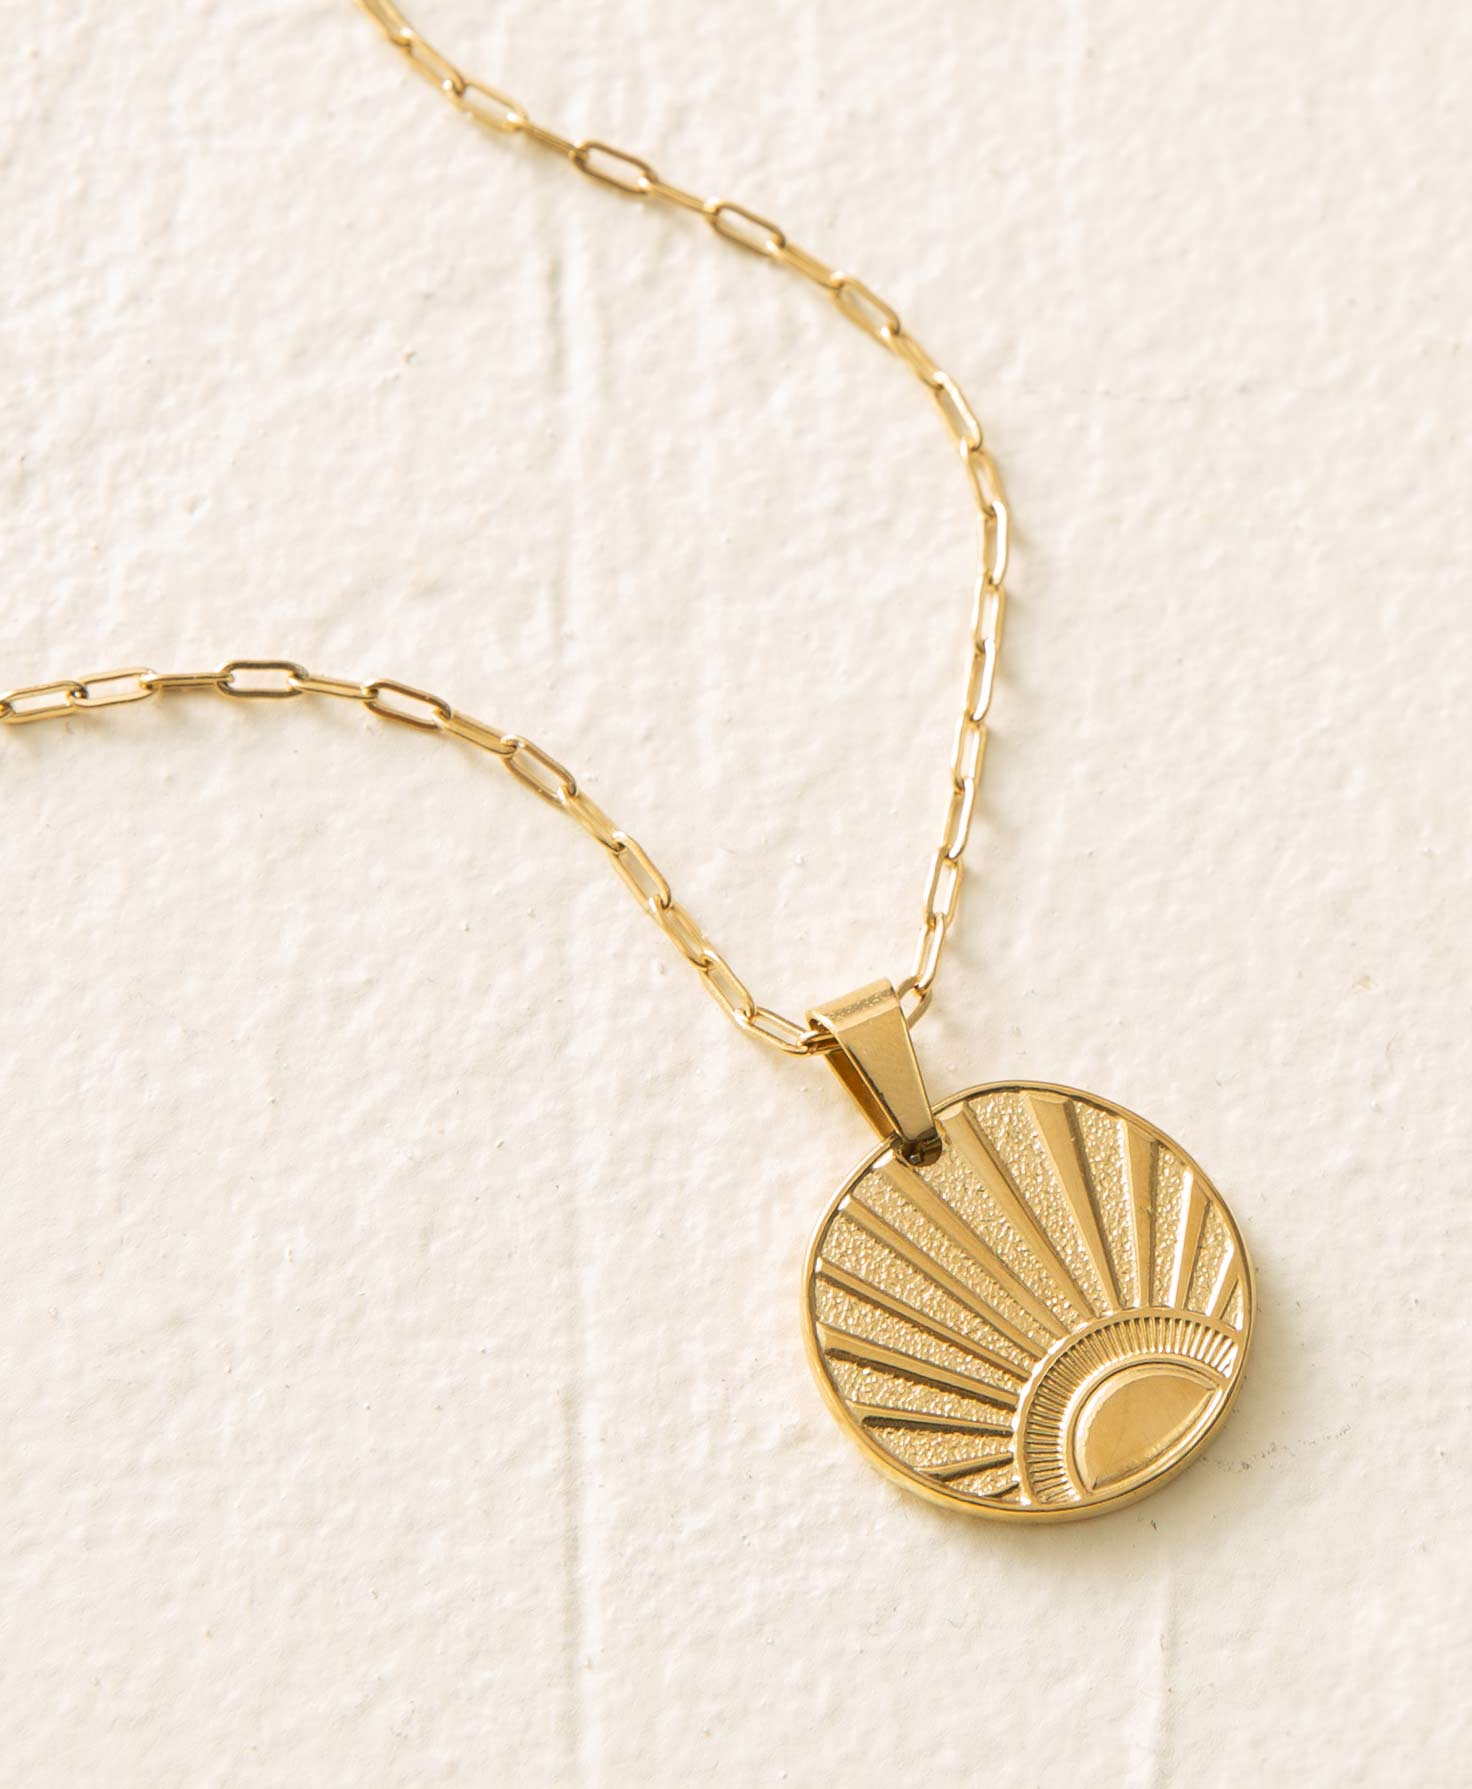 The Sunrise Necklace lays on a white background. It has a golden chain composed of elongated, oval-shaped links. Hanging from the chain is a flat, circular pendant etched with an image of half of a sun emerging over the horizon and emitting bright rays of light across the pendant. Both the chain and pendant have a glossy metallic finish.